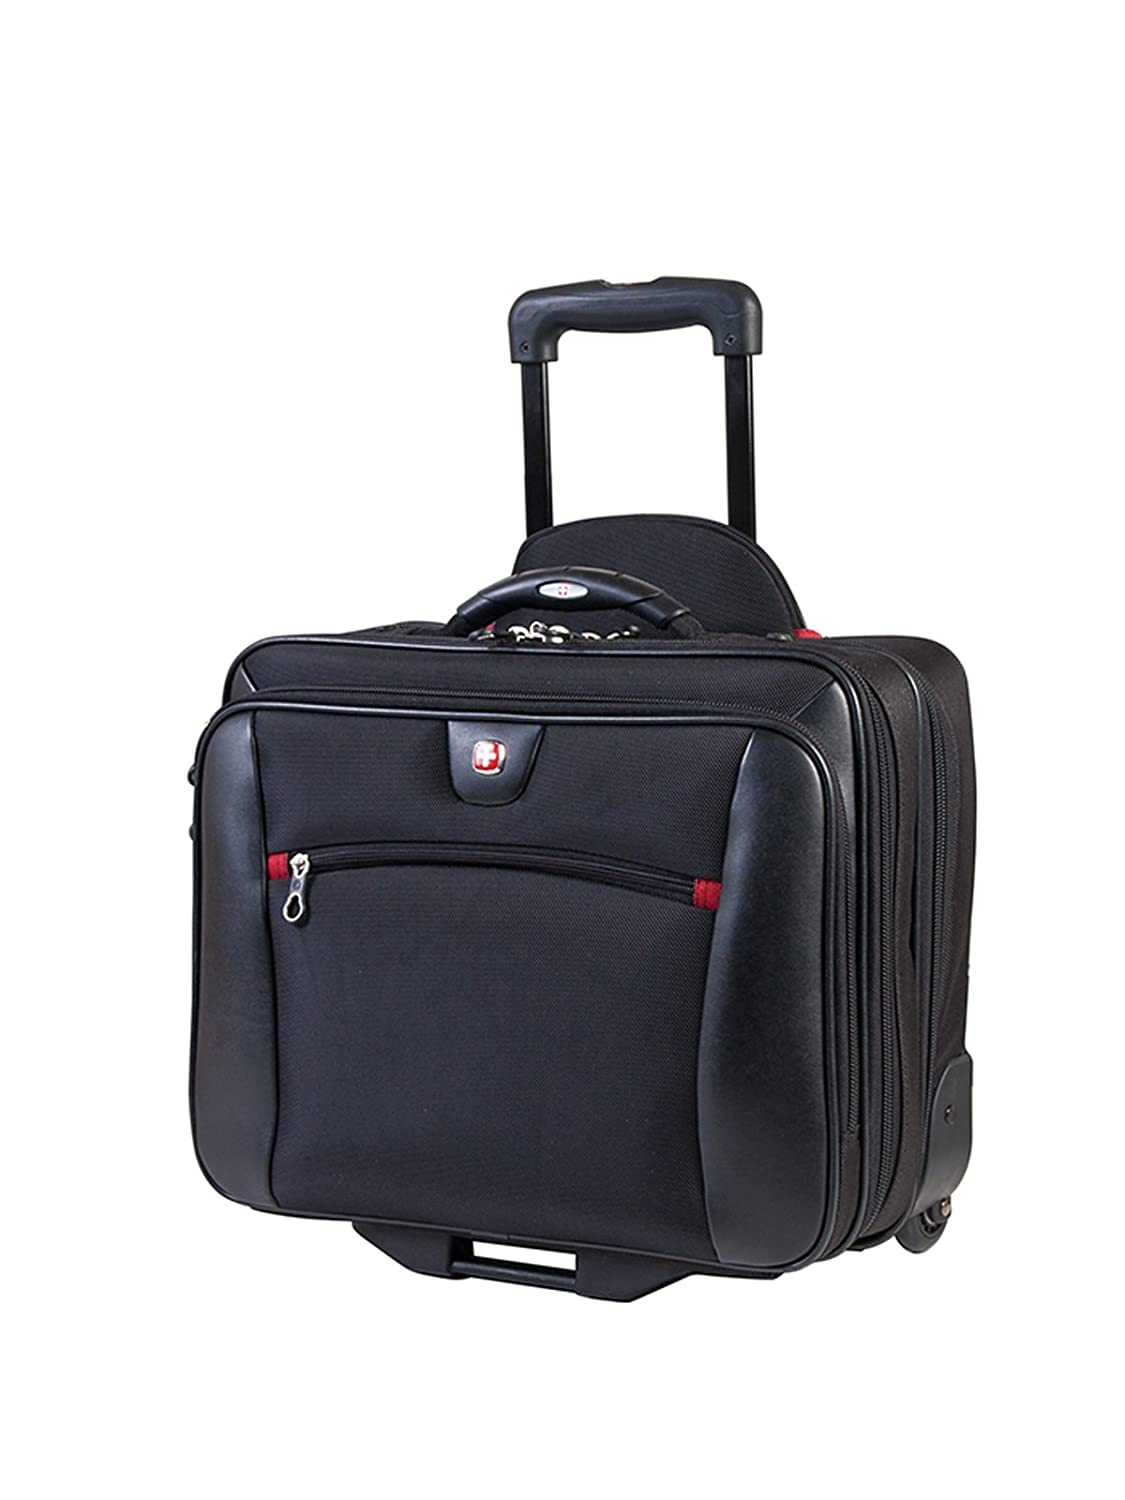 Swiss Gear International Carry-On Size Wheeled Case - Holds Up to 15.6-Inch Laptop and fits 7-Inch Tablet, Black Holiday Luggage SWA0990009